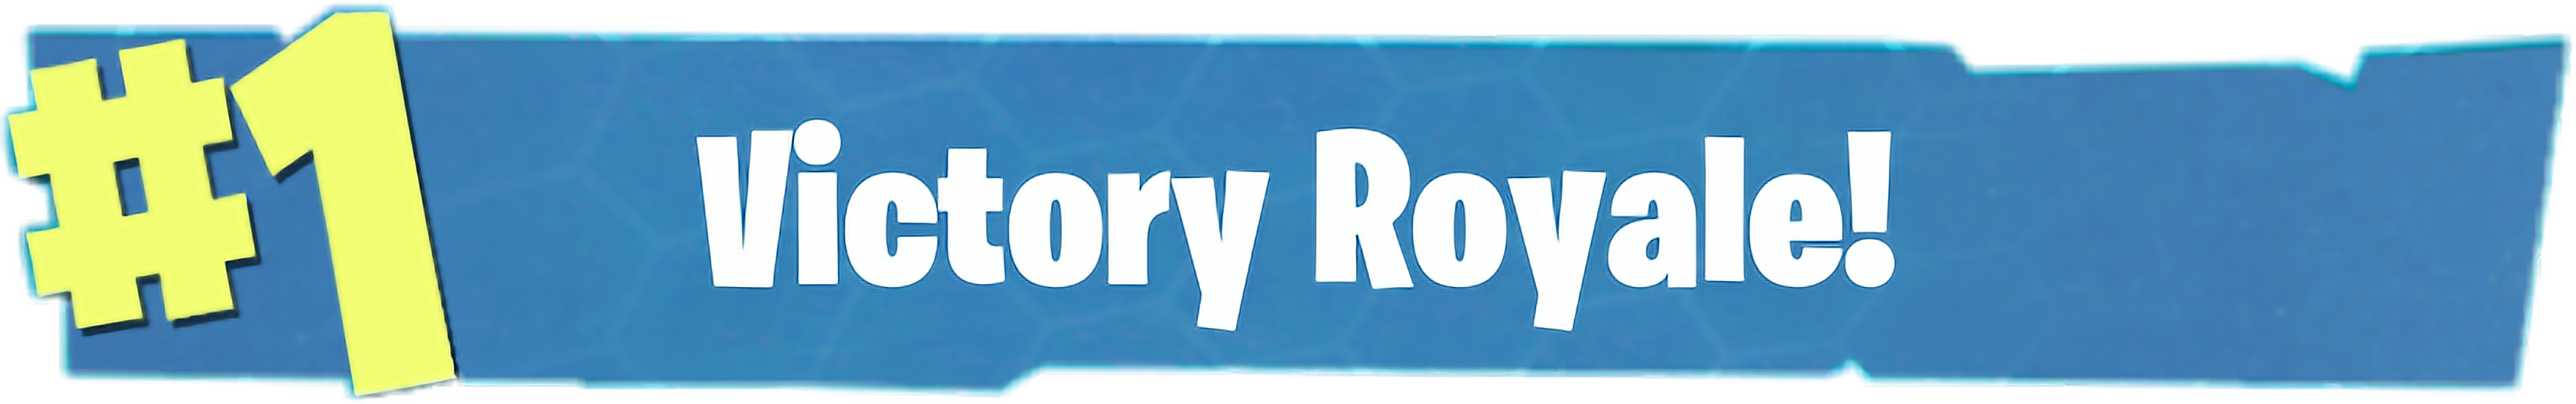 Fortnite Background Png Fortnite Online Games